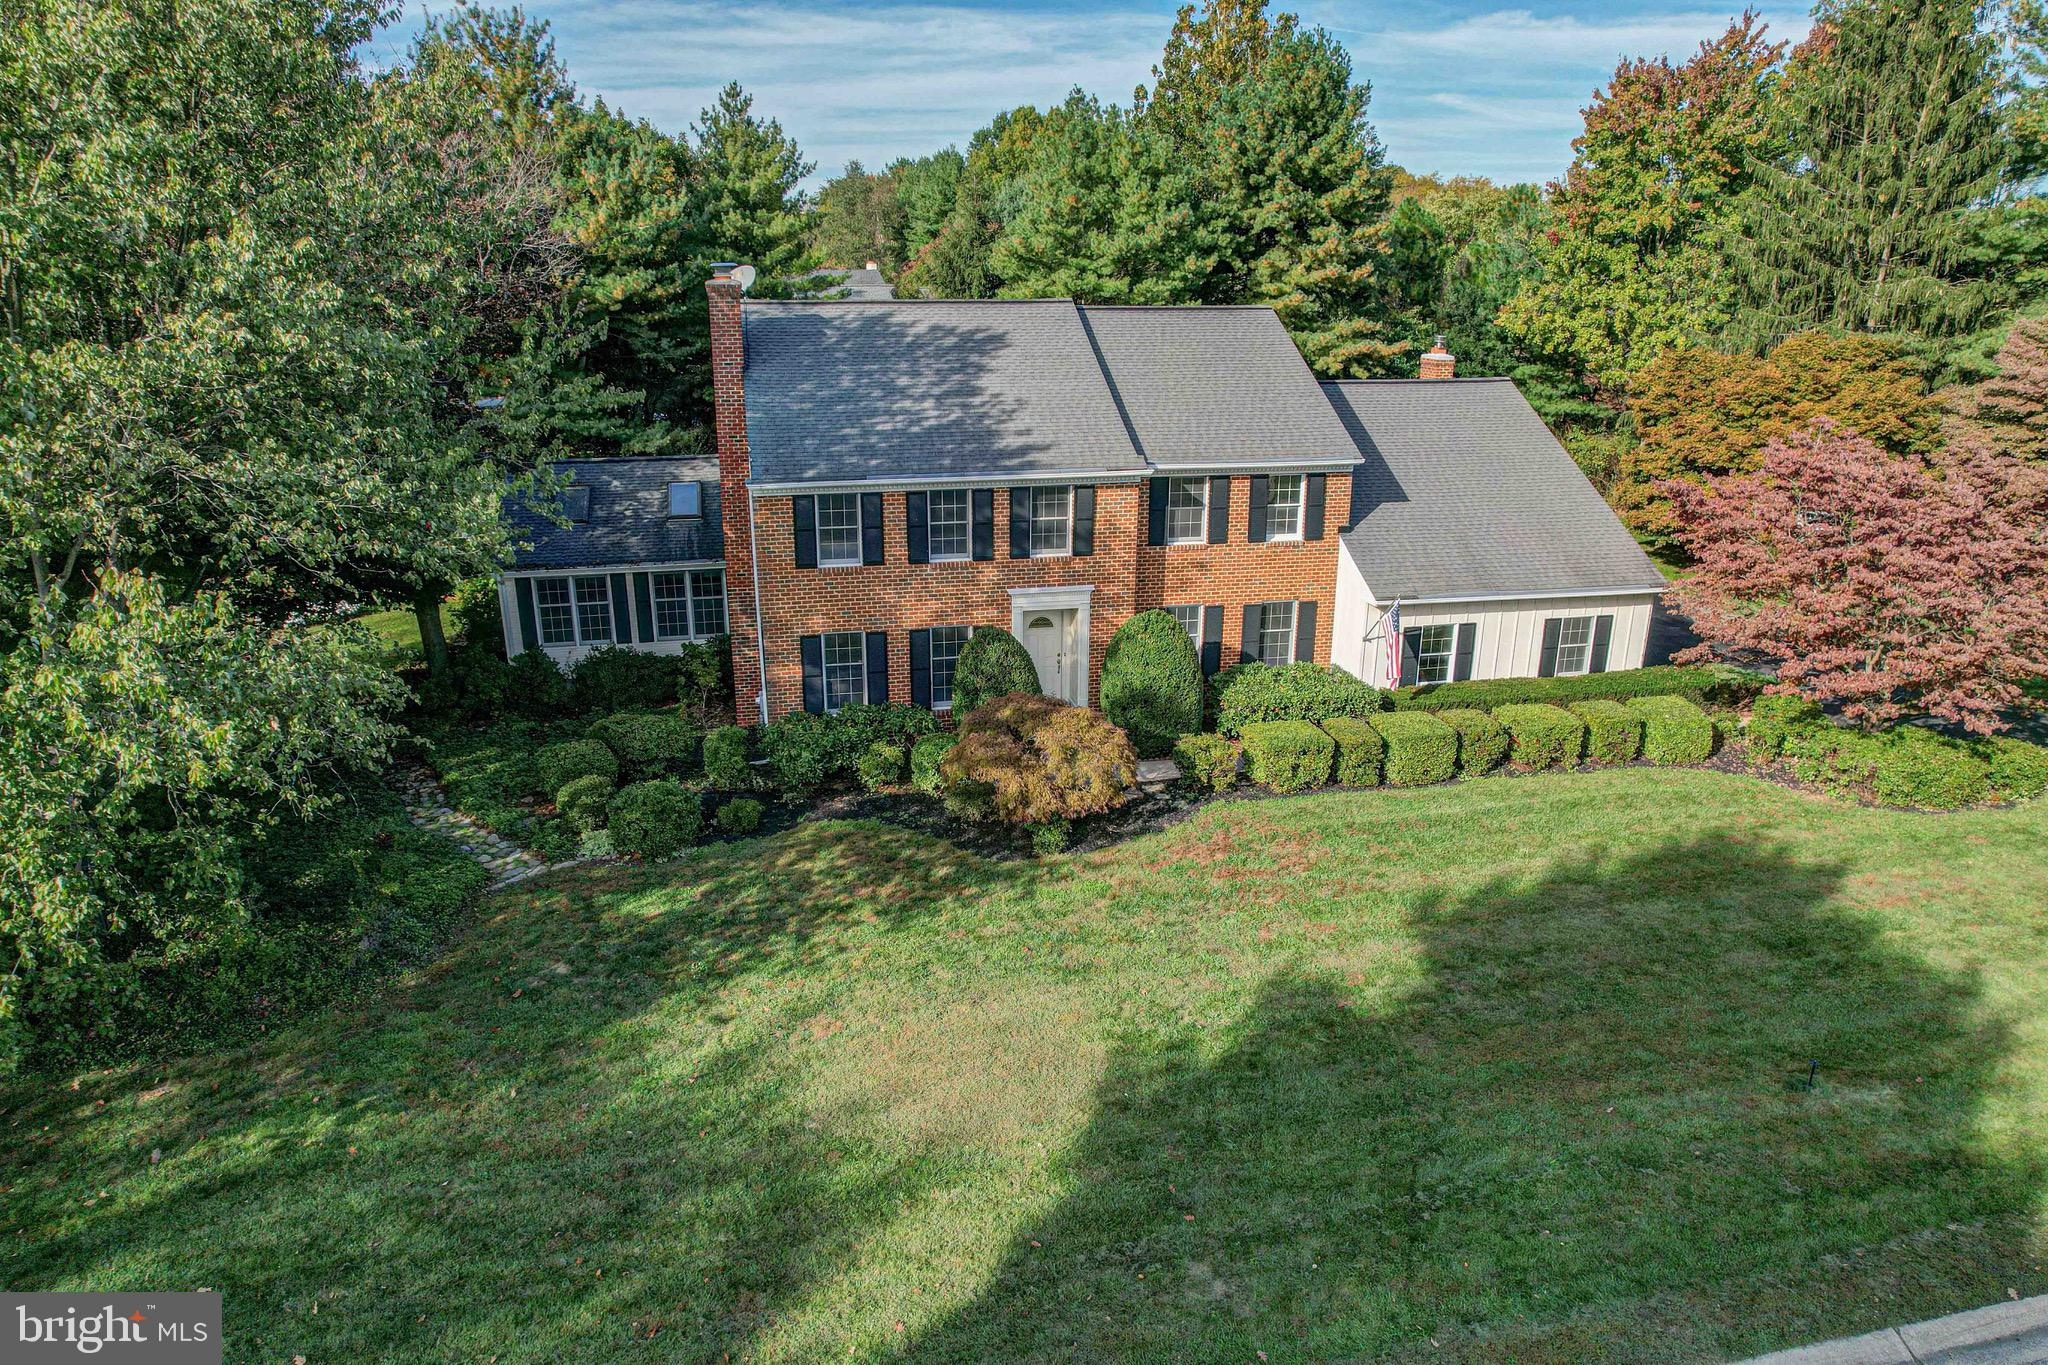 An exquisite home in an exquisite location, this stunning house is on the market now and awaiting YOU to call it home. Located in West Riding, one of Hockessin's most desirable neighborhoods, you will instantly fall in love with the quiet and spacious feel. Located on a lush one acre lot, the mature trees and landscaping offer infinite privacy and gorgeous curb appeal that's enhanced by the classic brick front and two car garage. The backyard is a dream retreat full of stunning gardens and beautiful views to be enjoyed from the large deck, and an incredible in-ground pool and diving board that is ready for you to take a dive! The pool is fully fenced and surrounded by hedging for privacy. Inside, you'll immediately be greeted by stunning hardwood floors and a stunning staircase that make for a warm and welcoming entrance. To your left, a stunning formal sitting room with detailed brick fireplace create an elegant feel. To the left, a dining room leads into an eat-in kitchen with a bay window. The functional layout allows for tons of storage and counter space. Be sure to check out the powder room, main floor bedroom, and MASSIVE sun room with stunning wood paneling detail on the ceiling with large beams and window benches that allow a cozy place to sit and admire any angle of your beautiful property. Just around the corner a massive family room with pitched ceilings, exposed beams, and a stunning brick feature wall with fireplace make for the coziest place to gather with family. A spiral staircase leads to a loft area overlooking the family room, and continues down the hall to the bedroom space. The large master bedroom has his and hers closets and a large master bath with walk-in shower, and three more spacious bedrooms share a full hall bath with double vanity. The basement is finished and offers MULTIPLE rooms for entertaining and relaxation, as well as extra unfinished storage space! This gem will not last long, be the first to see it for a chance to make it your